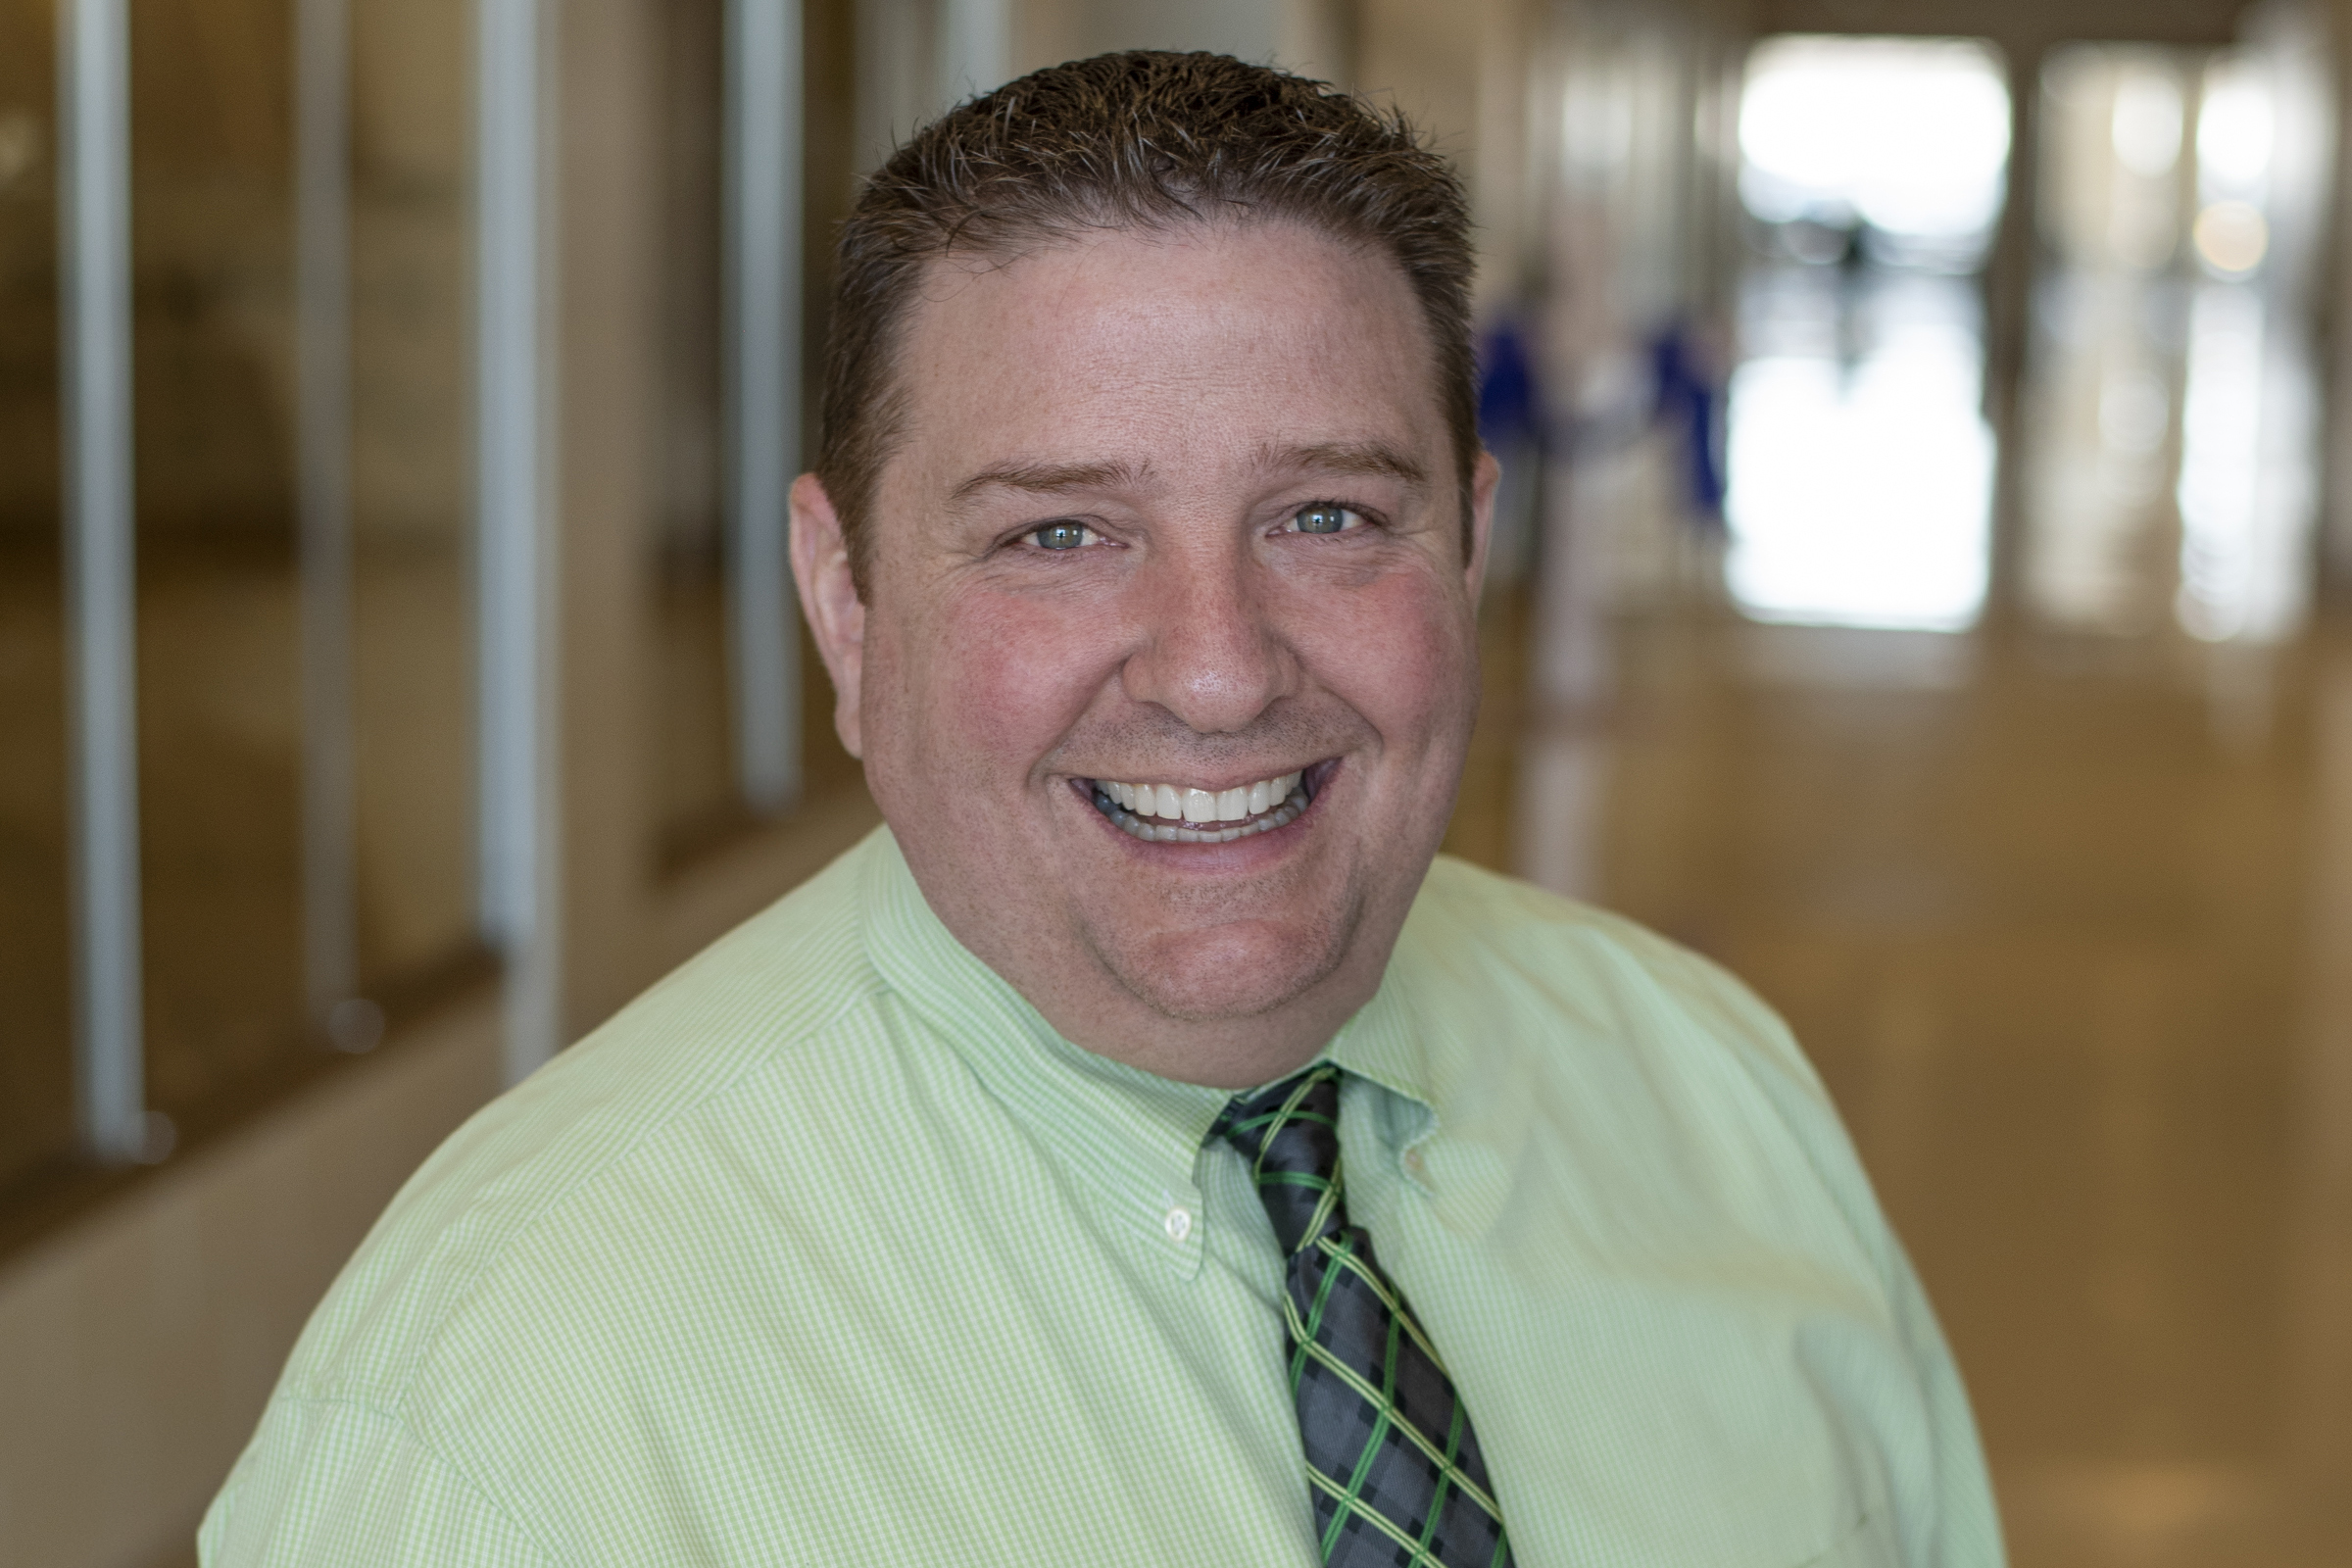 John Dols Named Holy Family's Second Principal Featured Image.